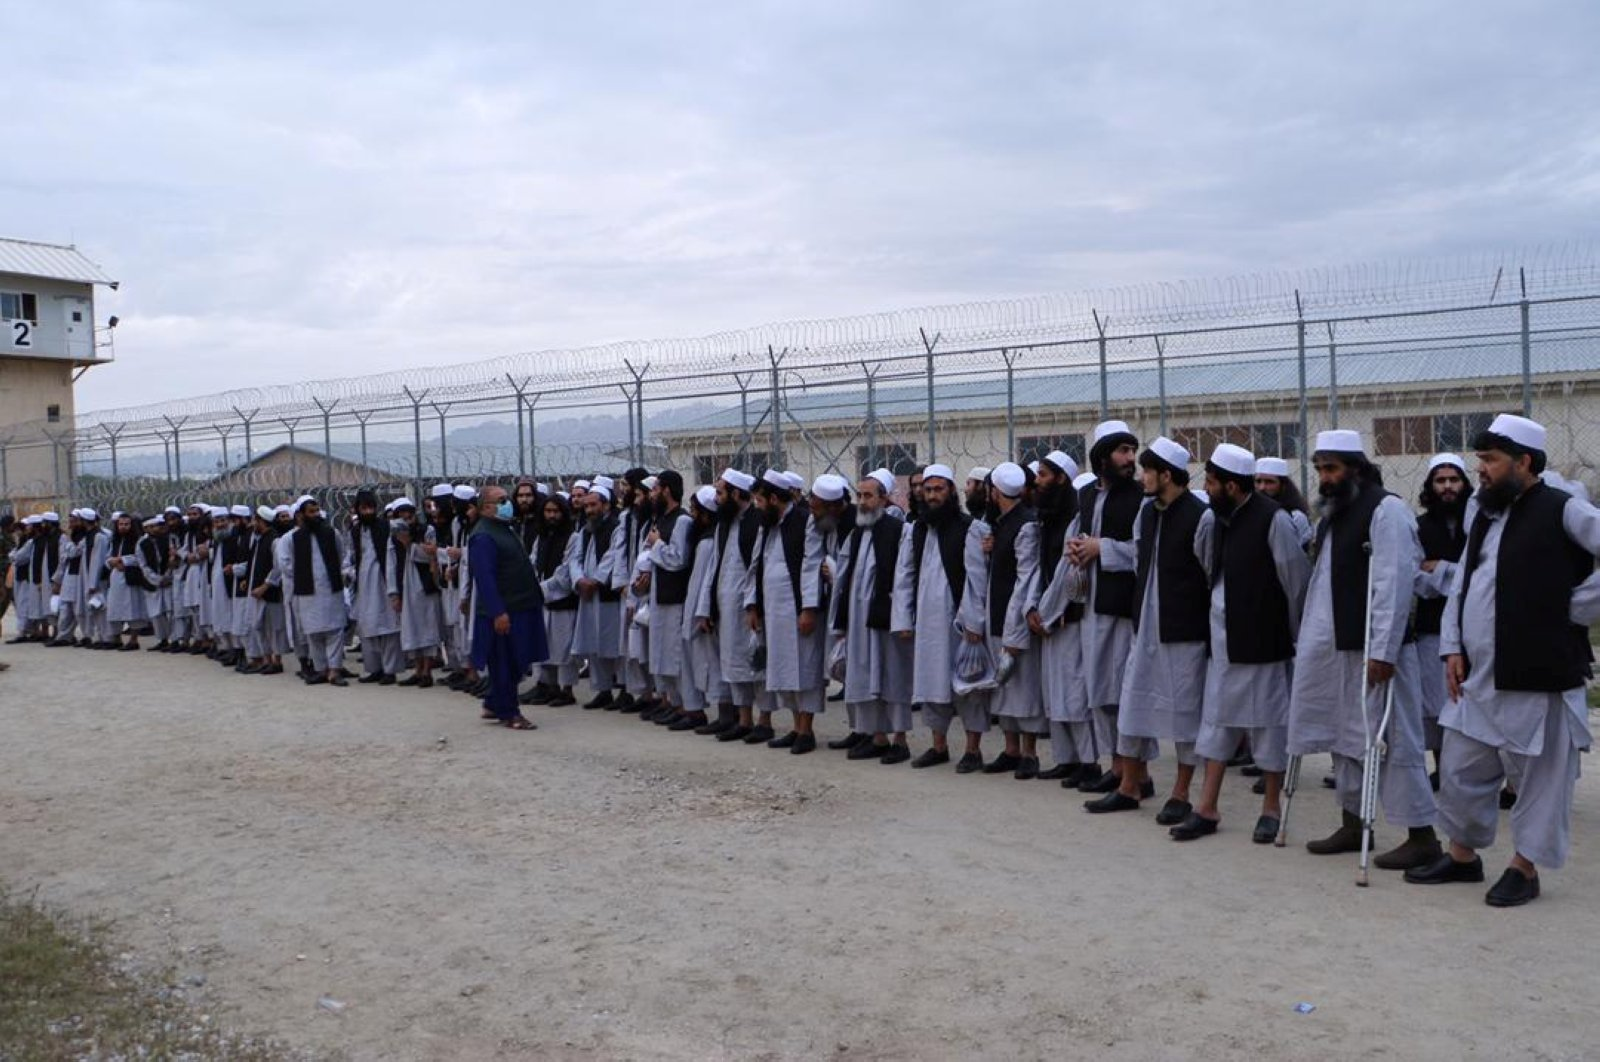 Newly freed Taliban prisoners line up at Bagram prison, Kabul, April 11, 2020. (Reuters Photo)